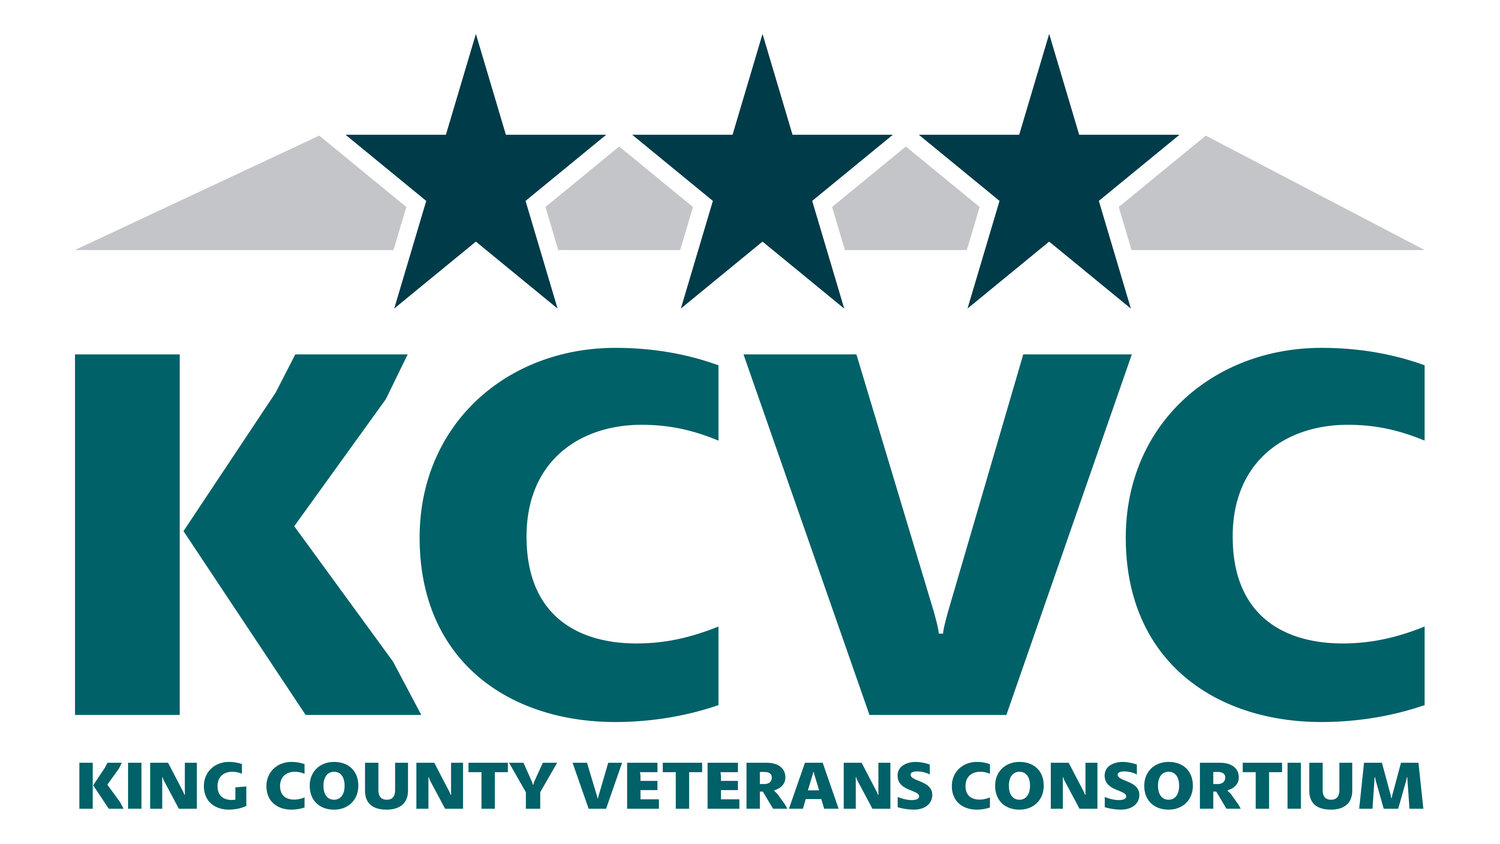 King County Veterans Consortium